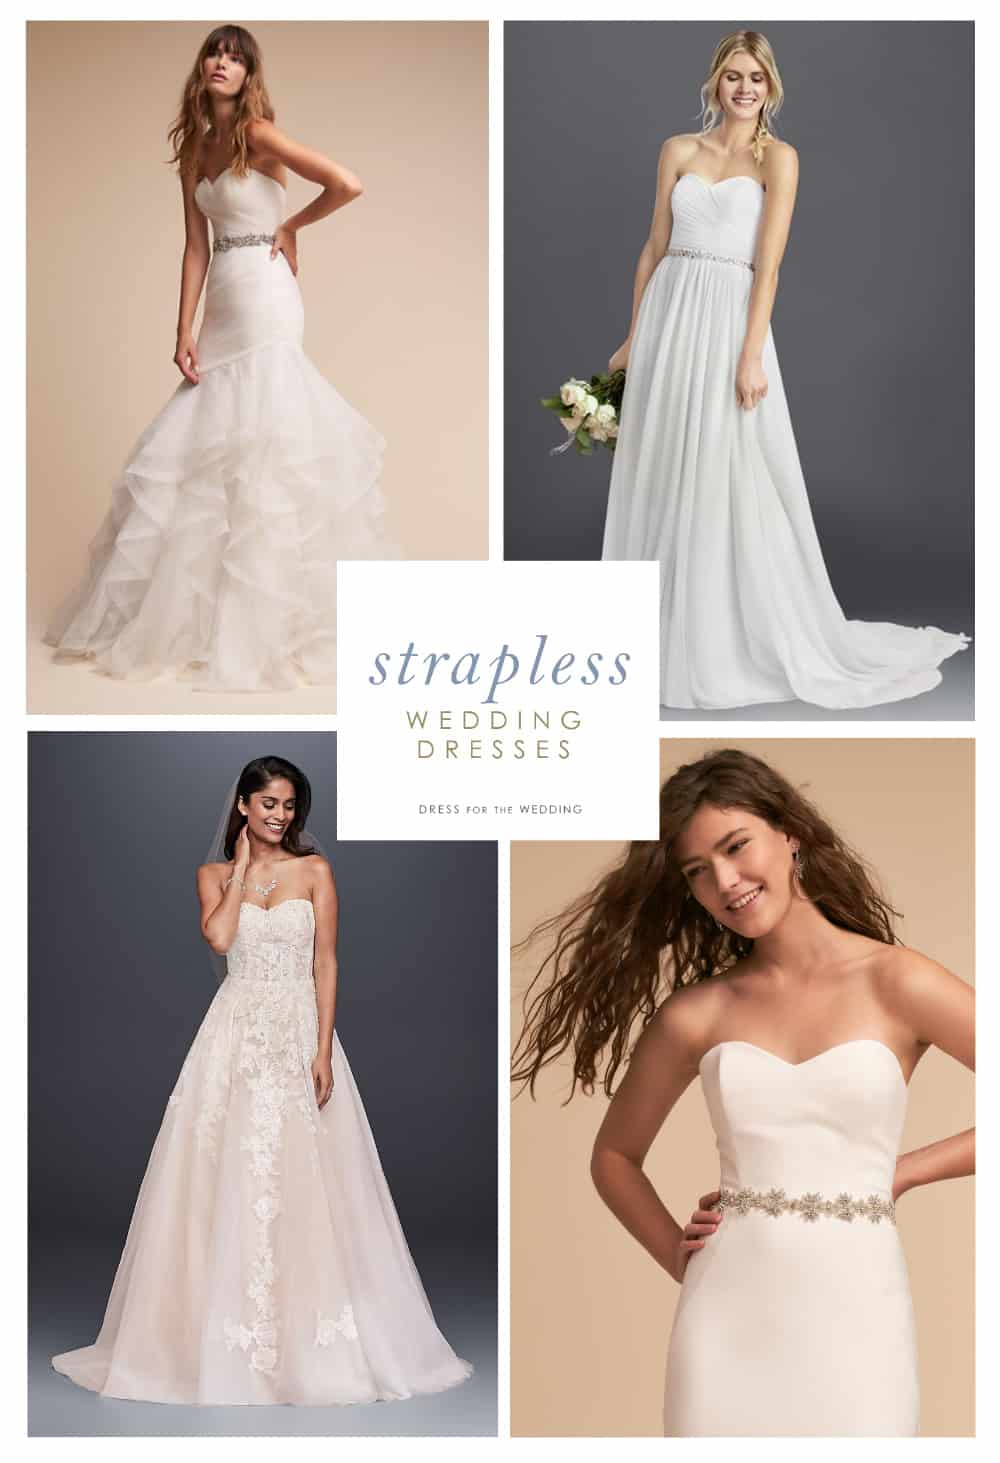 Strapless wedding dresses dress for the wedding for What to wear under strapless wedding dress